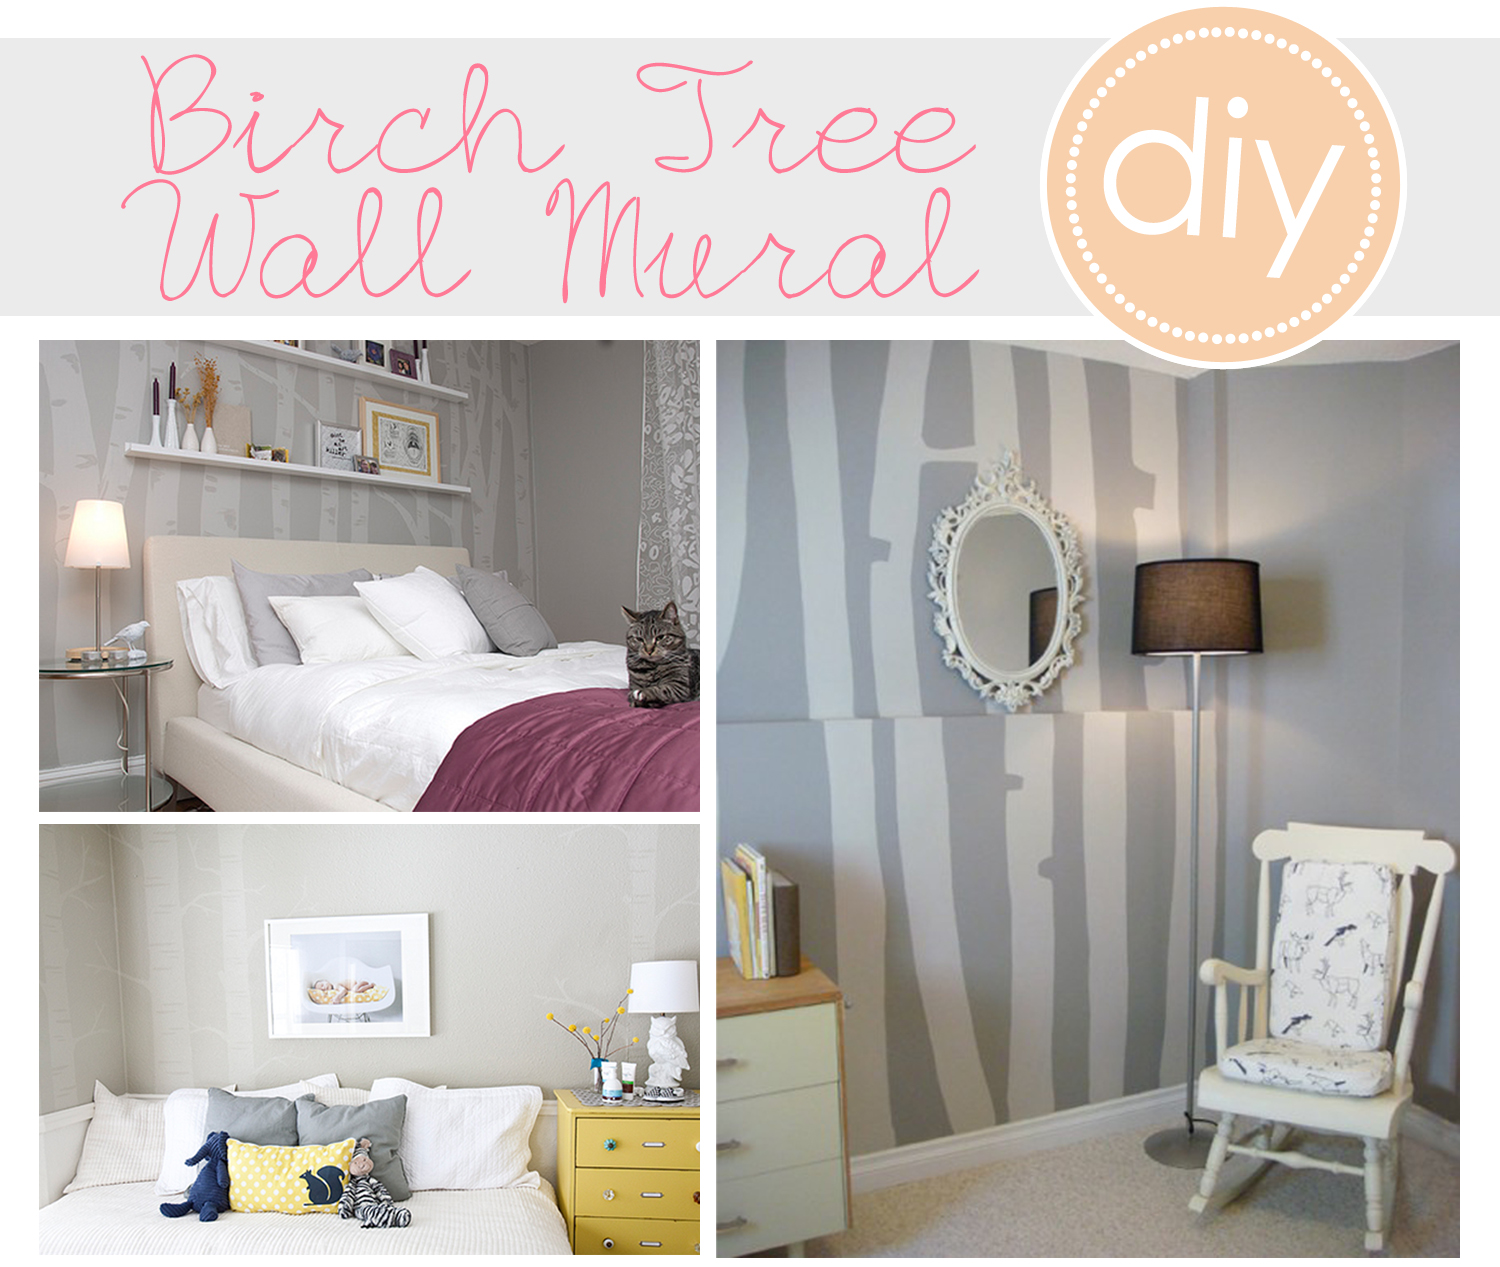 DIY Trend- Birch Tree Wall Murals - At Home With Natalie